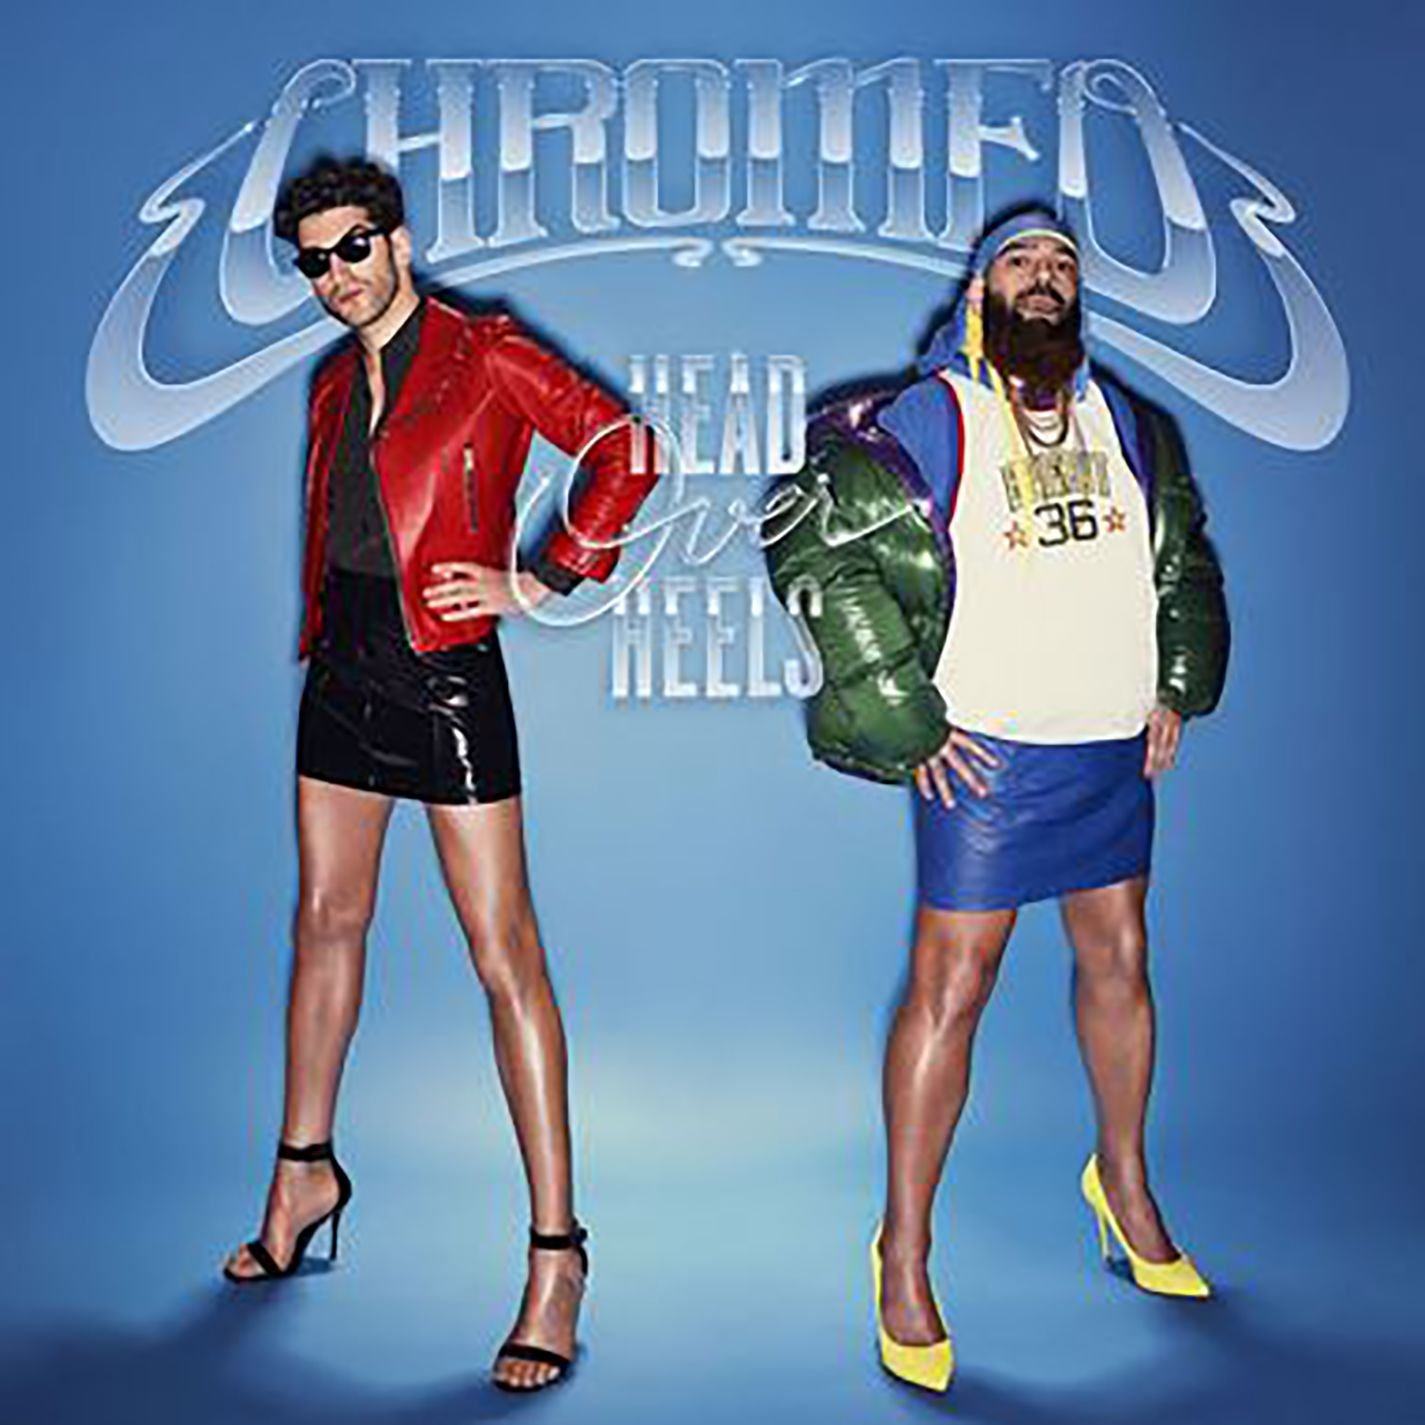 Cassette : Chromeo - Head Over Heels (Cassette)